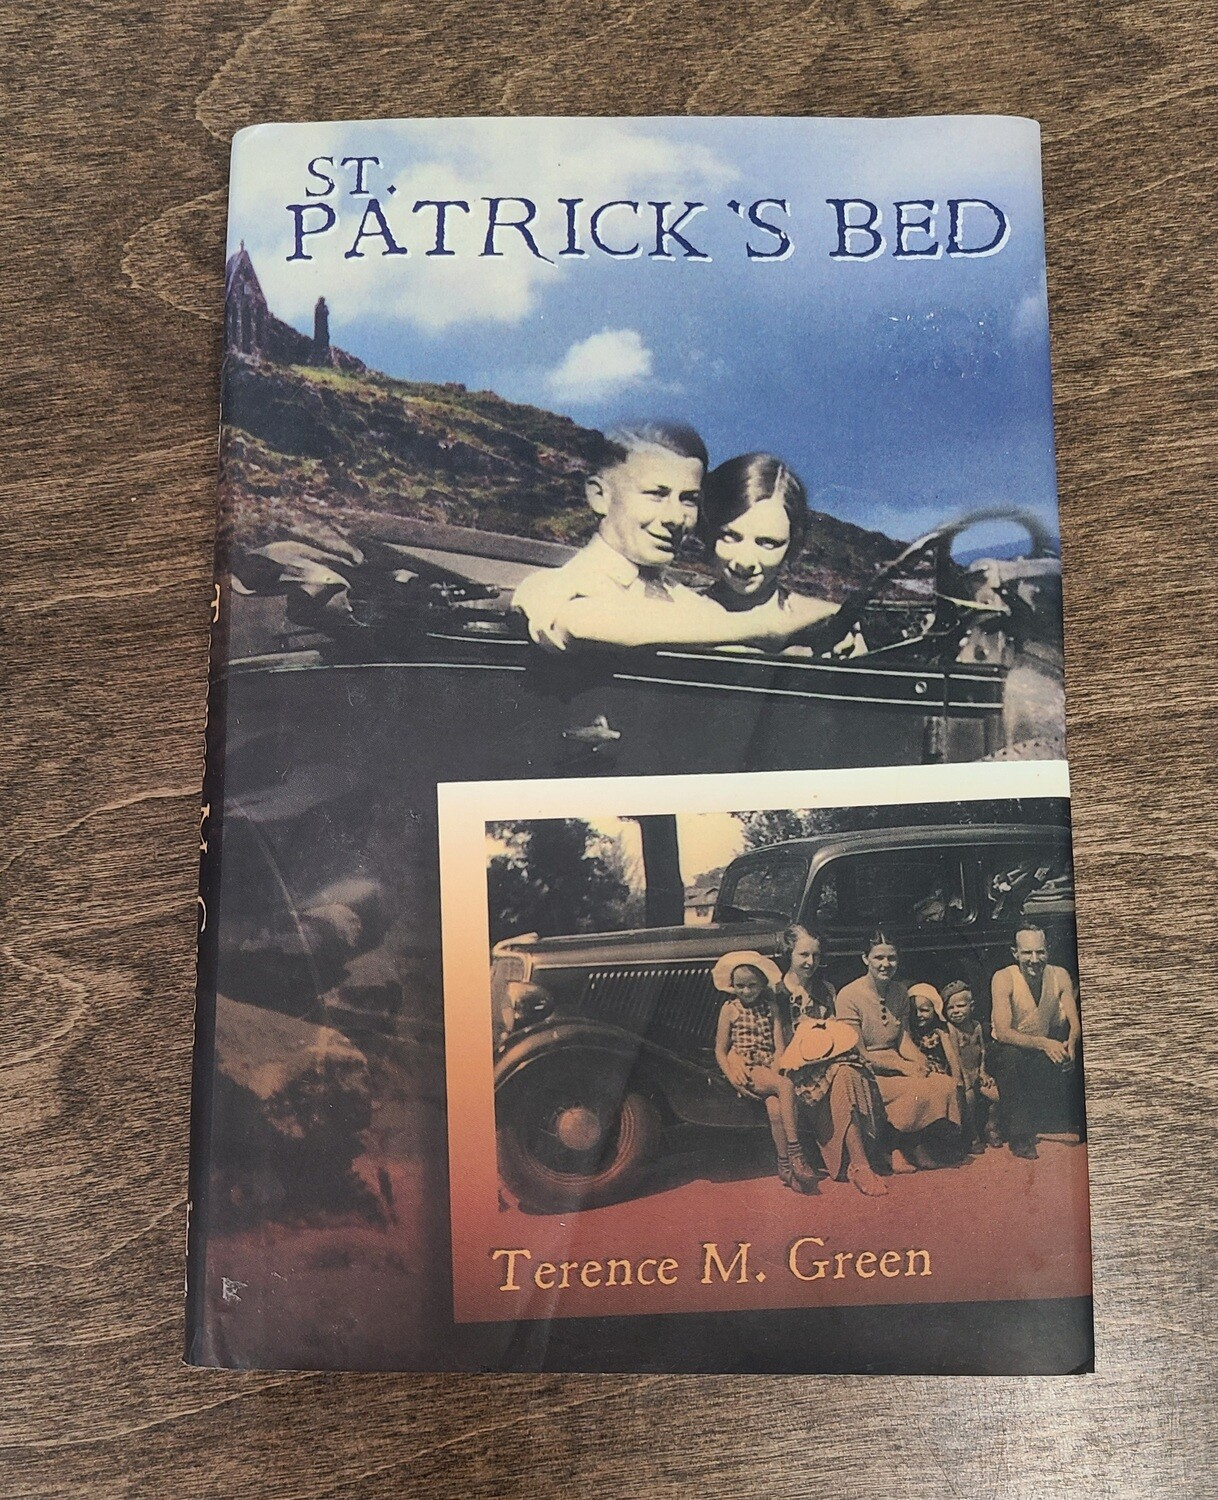 St. Patrick's Bed by Terence M. Green